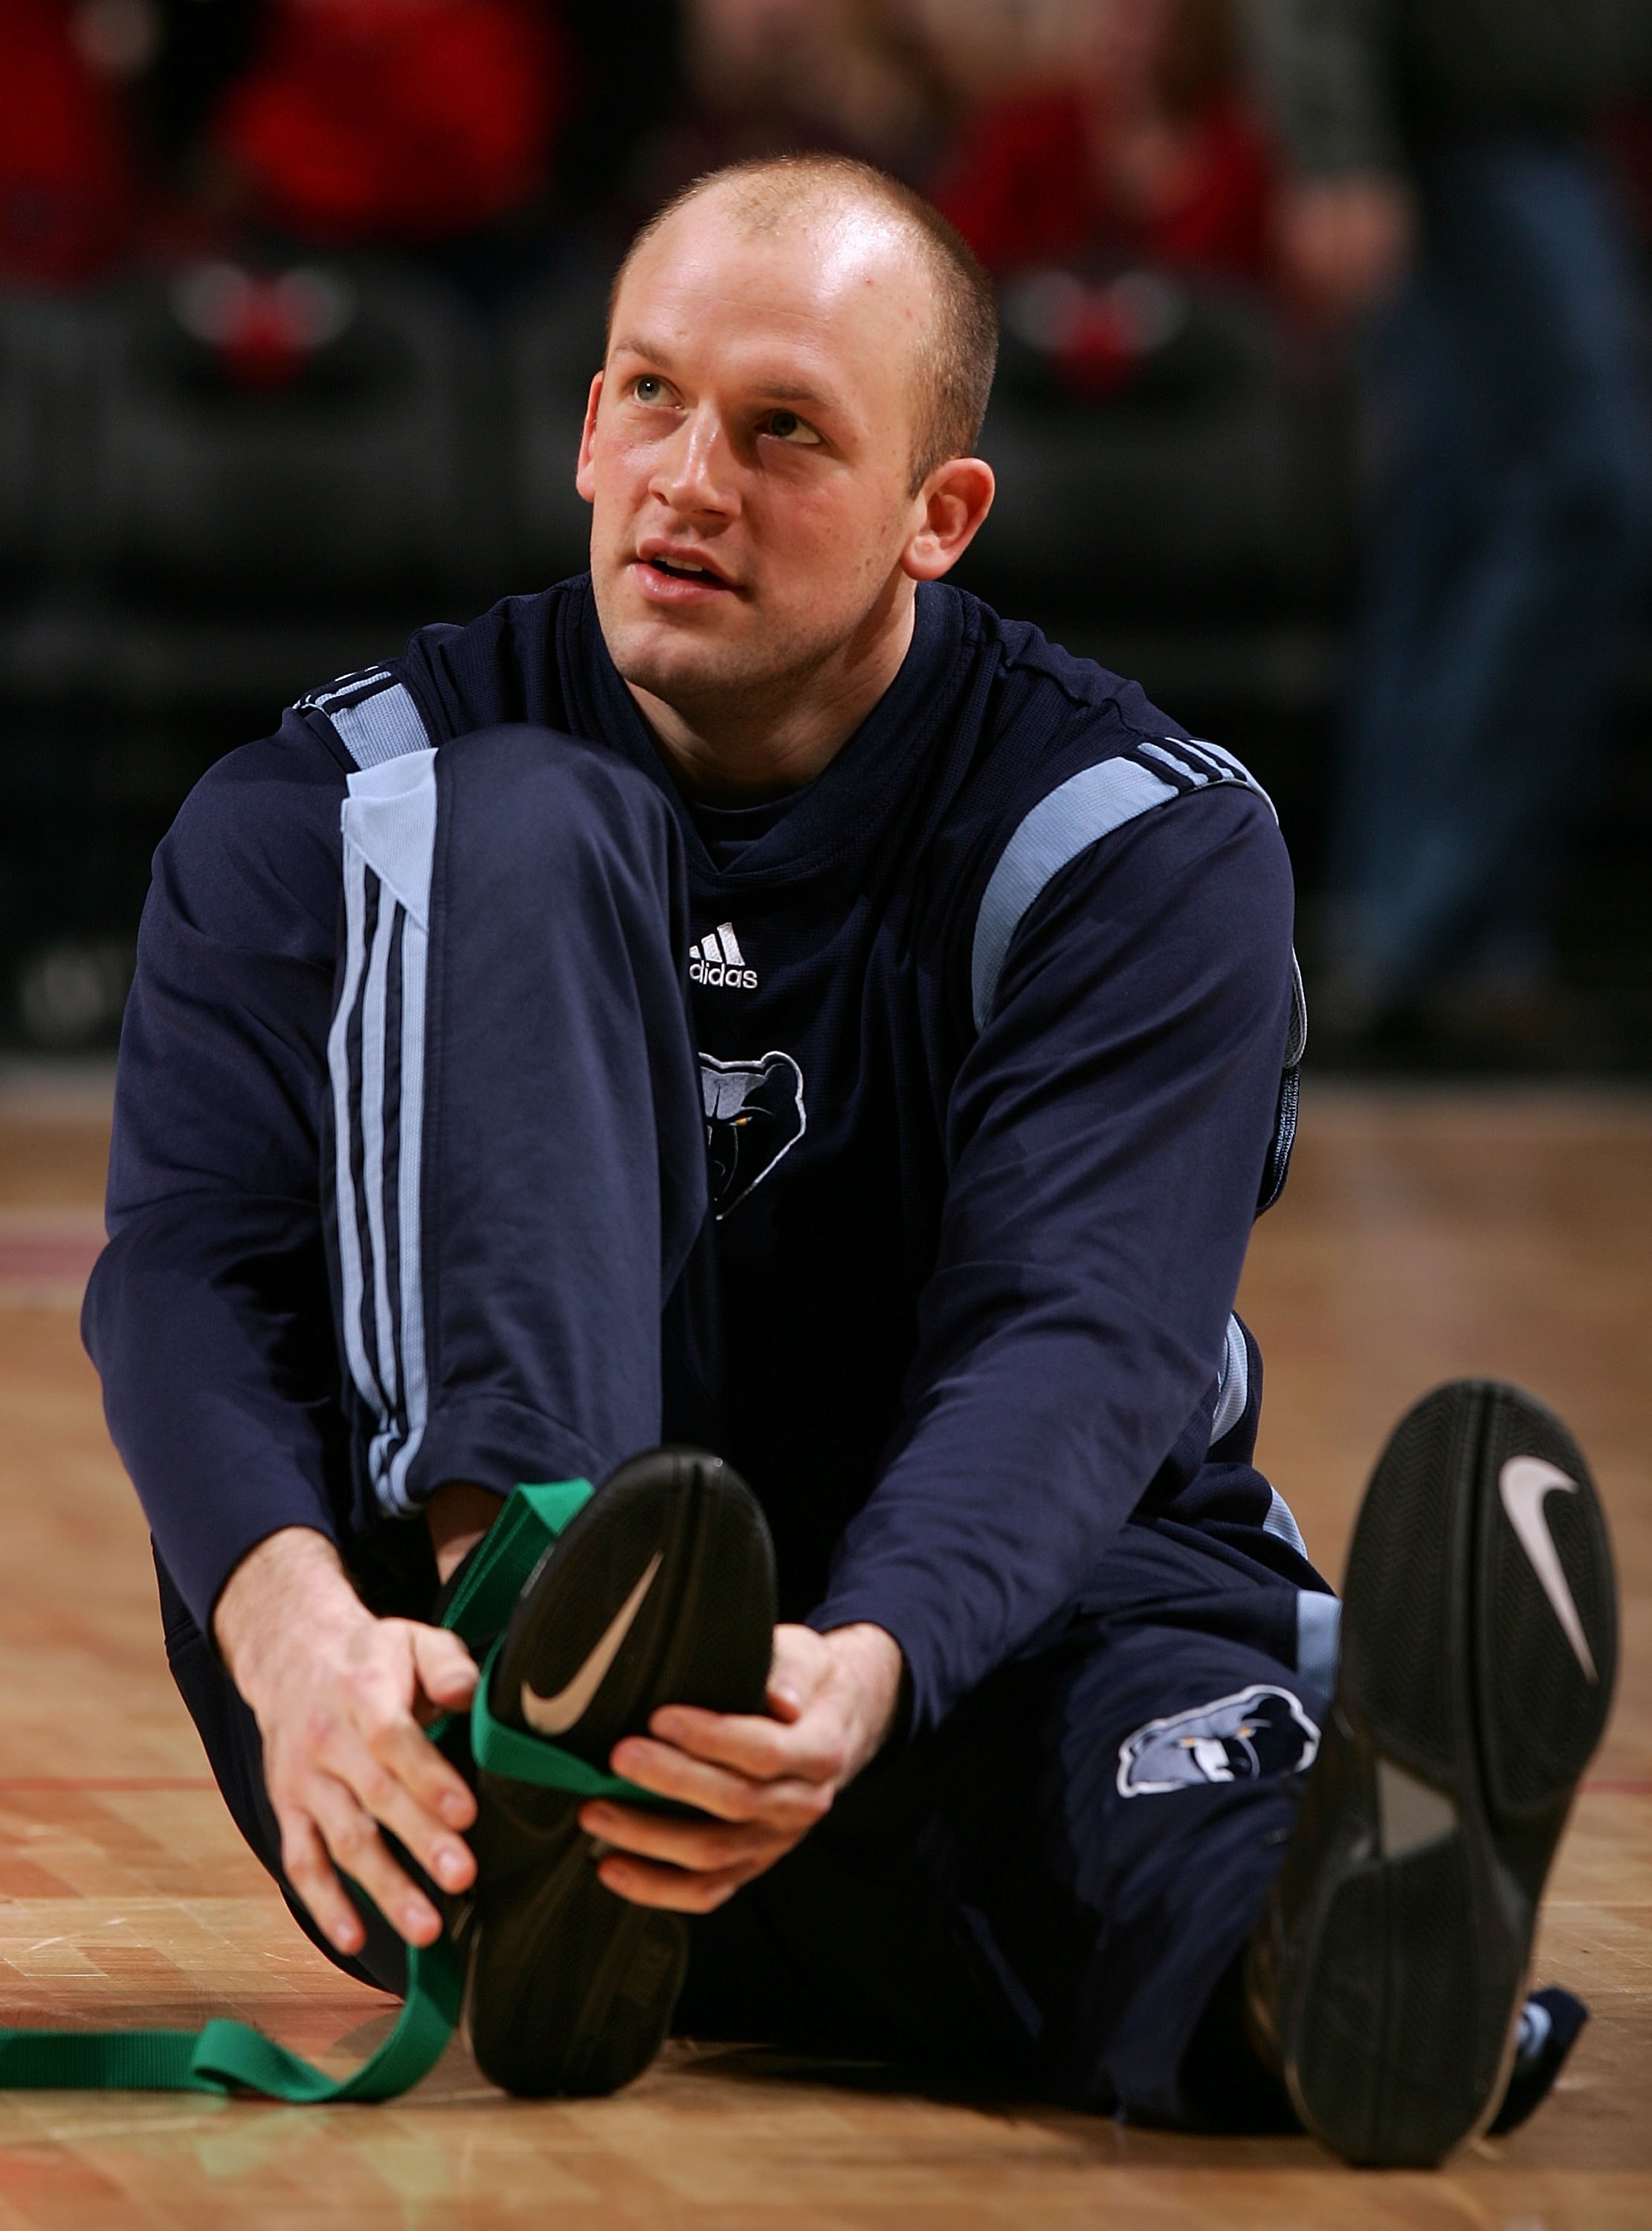 CHICAGO - JANUARY 13:  Brian Cardinal #35 of the Memphis Grizzlies stretches during warm-ups against the Chicago Bulls January 13, 2007 at the United Center in Chicago, Illinois. The Bulls won 111-66. NOTE TO USER: User expressly acknowledges and agrees t